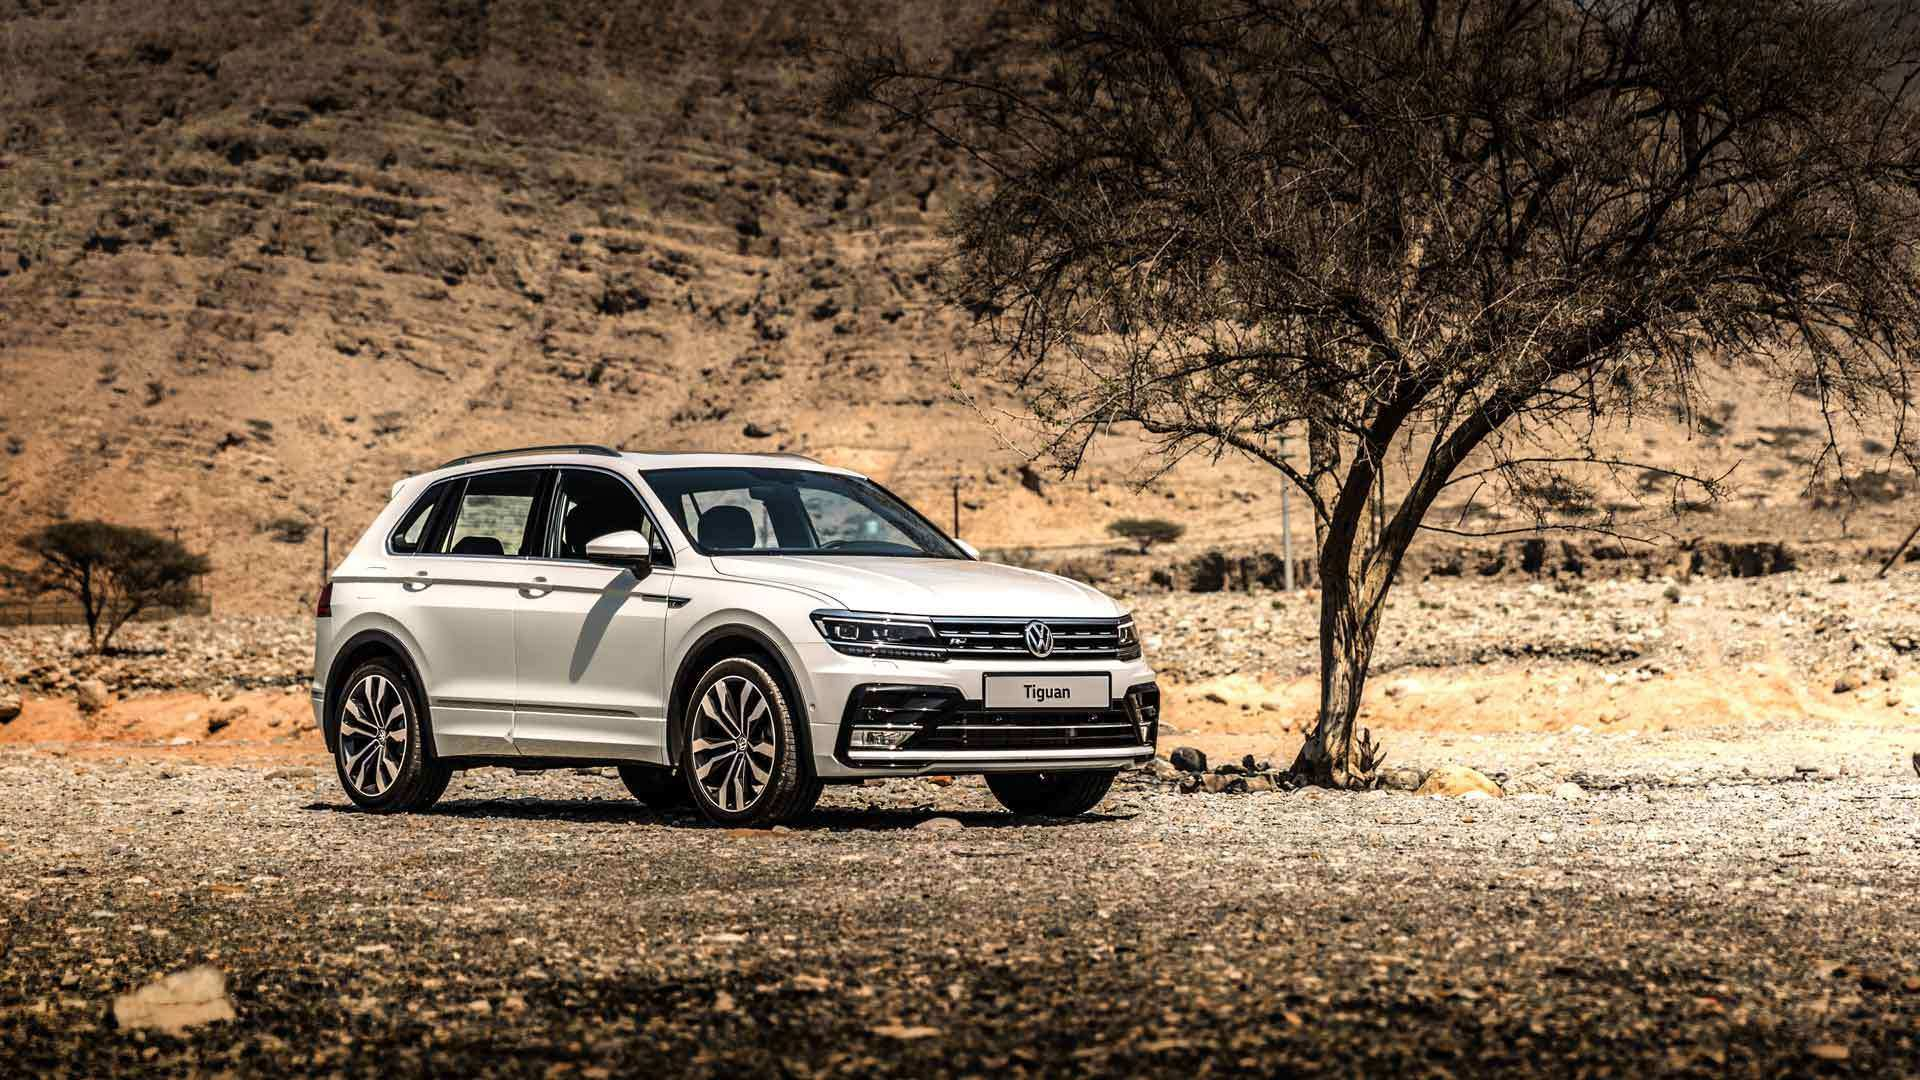 36 New Volkswagen Touareg 2019 Price In Kuwait Review Review for Volkswagen Touareg 2019 Price In Kuwait Review